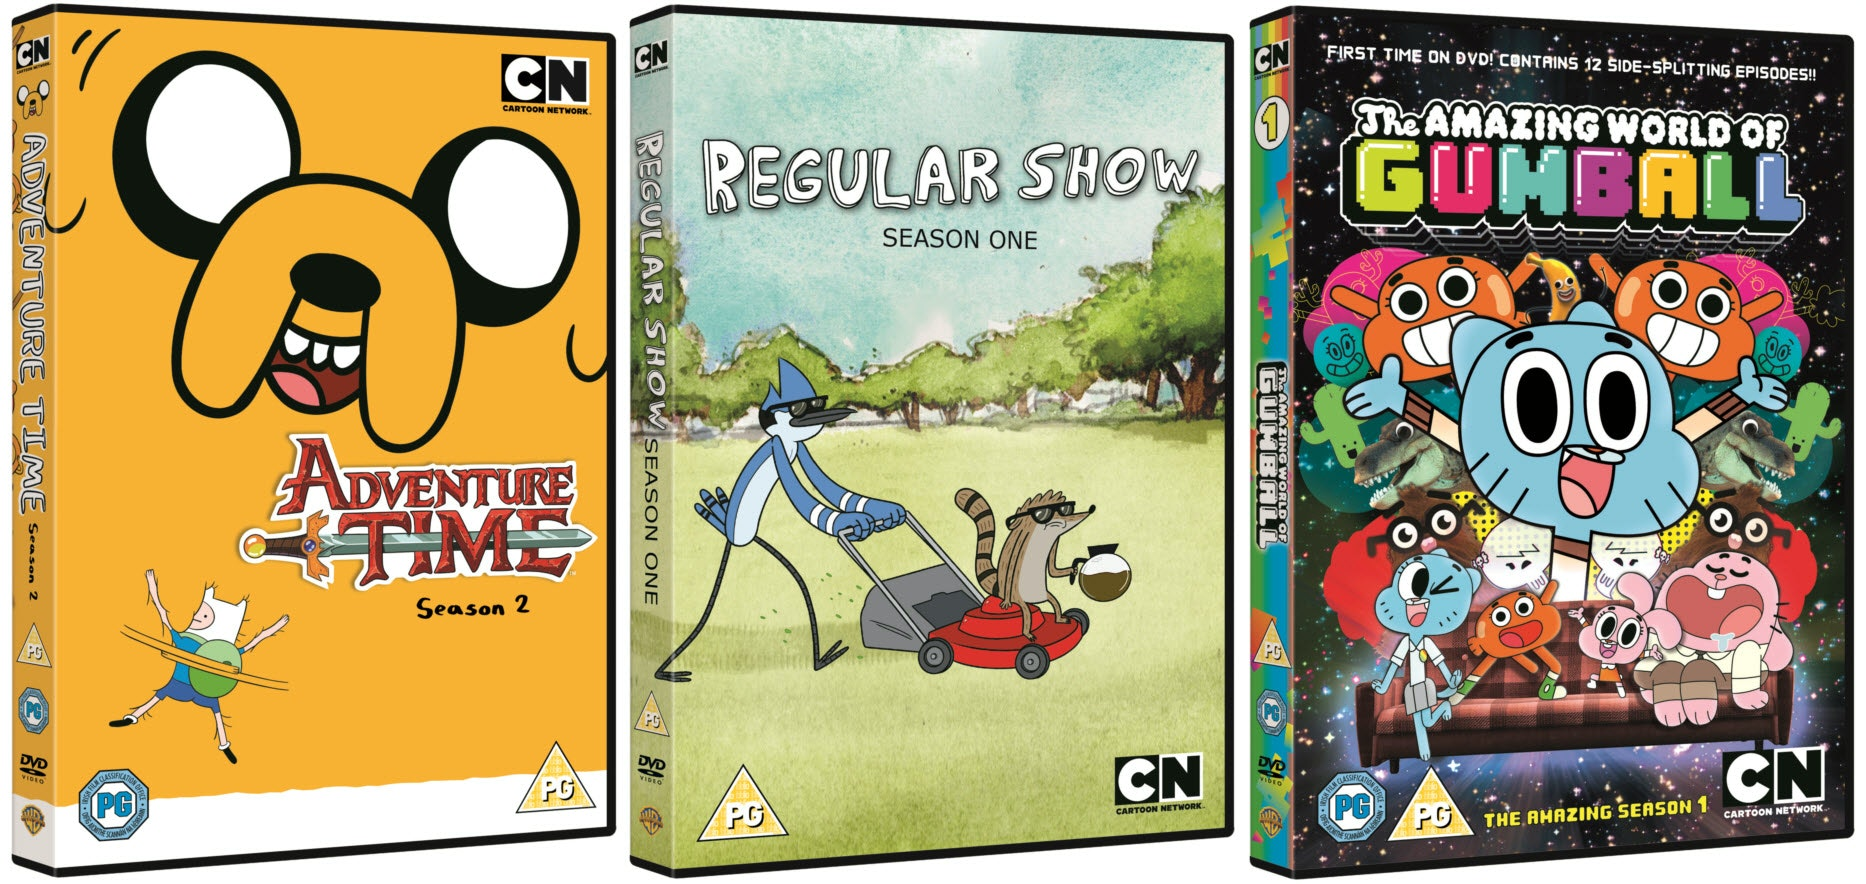 Adventure Time, Regular Show and The Amazing World of Gumball sweepstakes